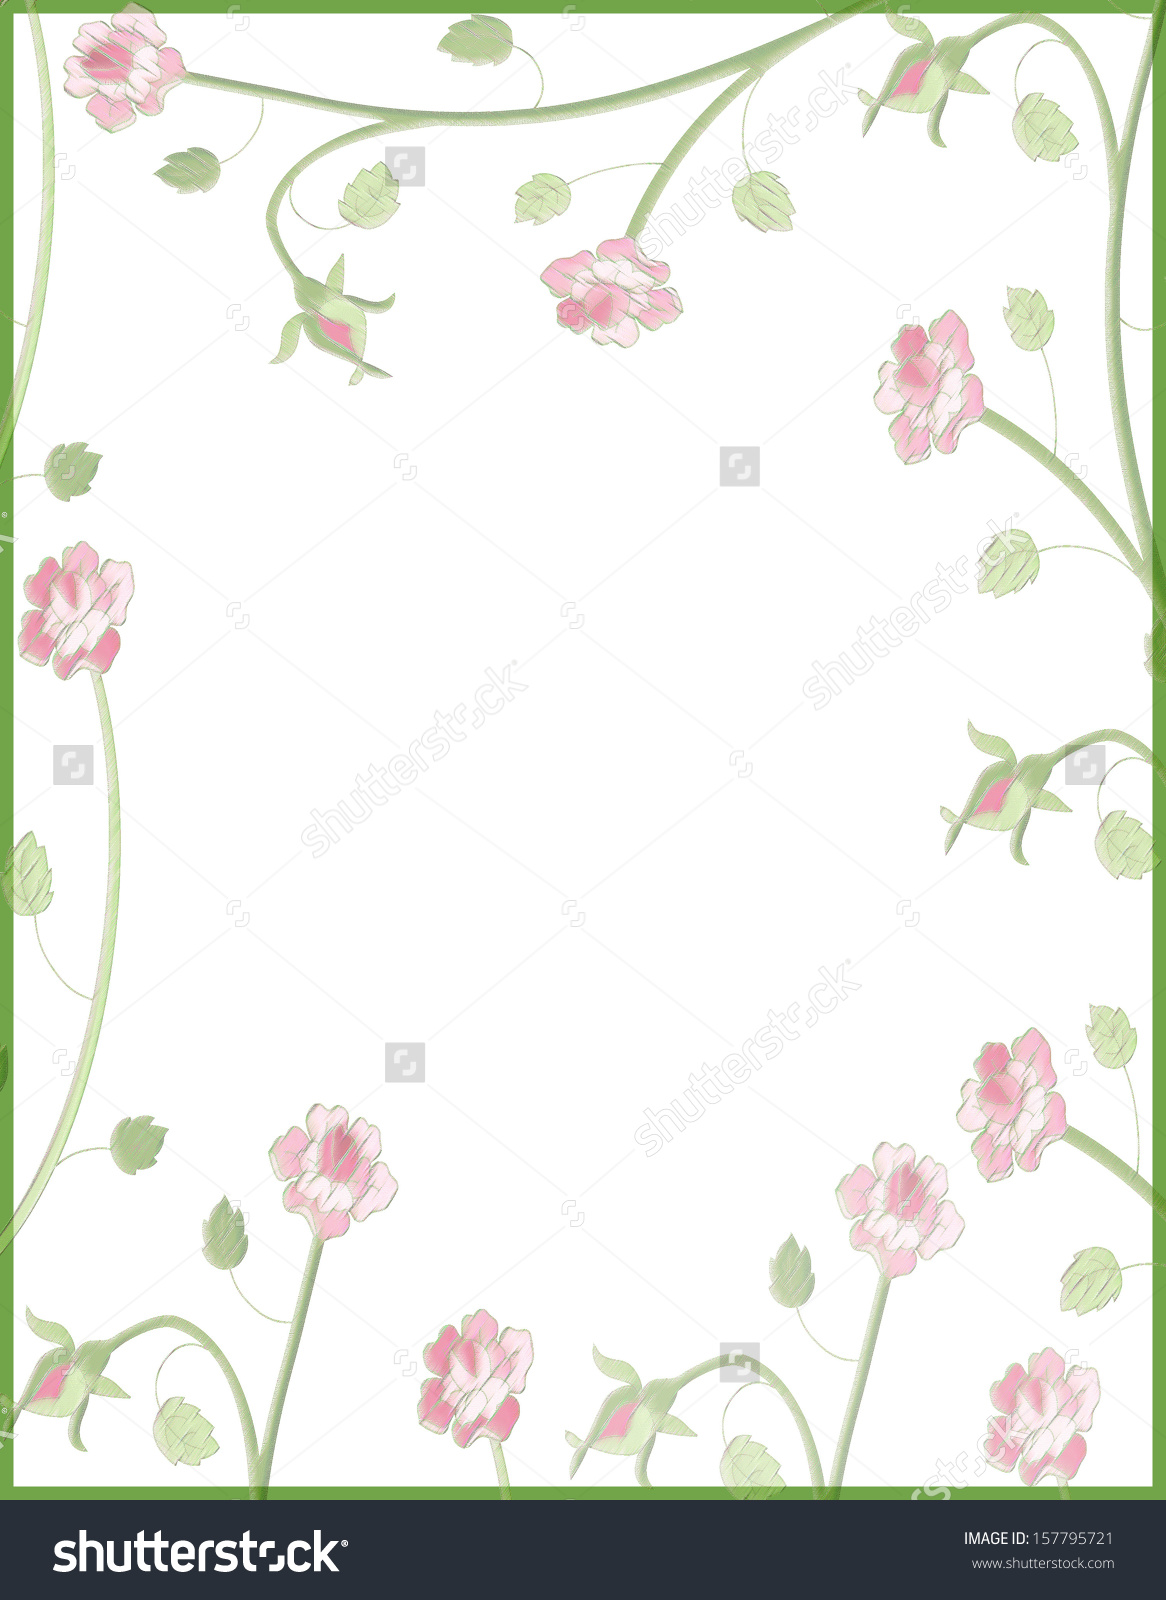 Sympathy Clipart Borders Clipground